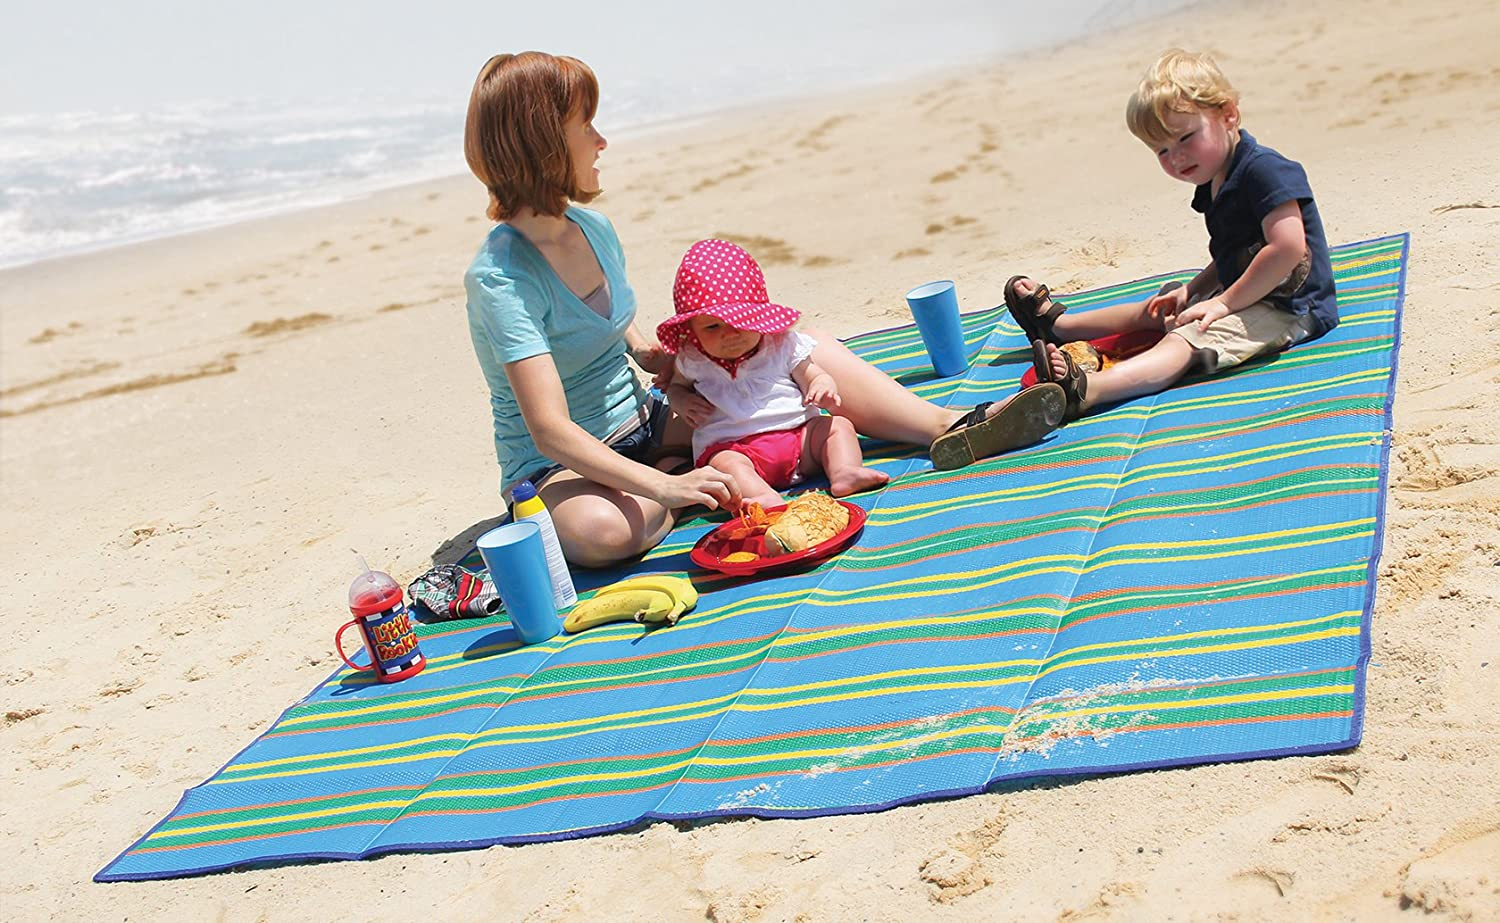 RV and Outings Camco Handy Mat with Strap Weather-Proof and Mold- Mildew Resistant Perfect for Picnics Beaches Blue//Green - 60 x 78